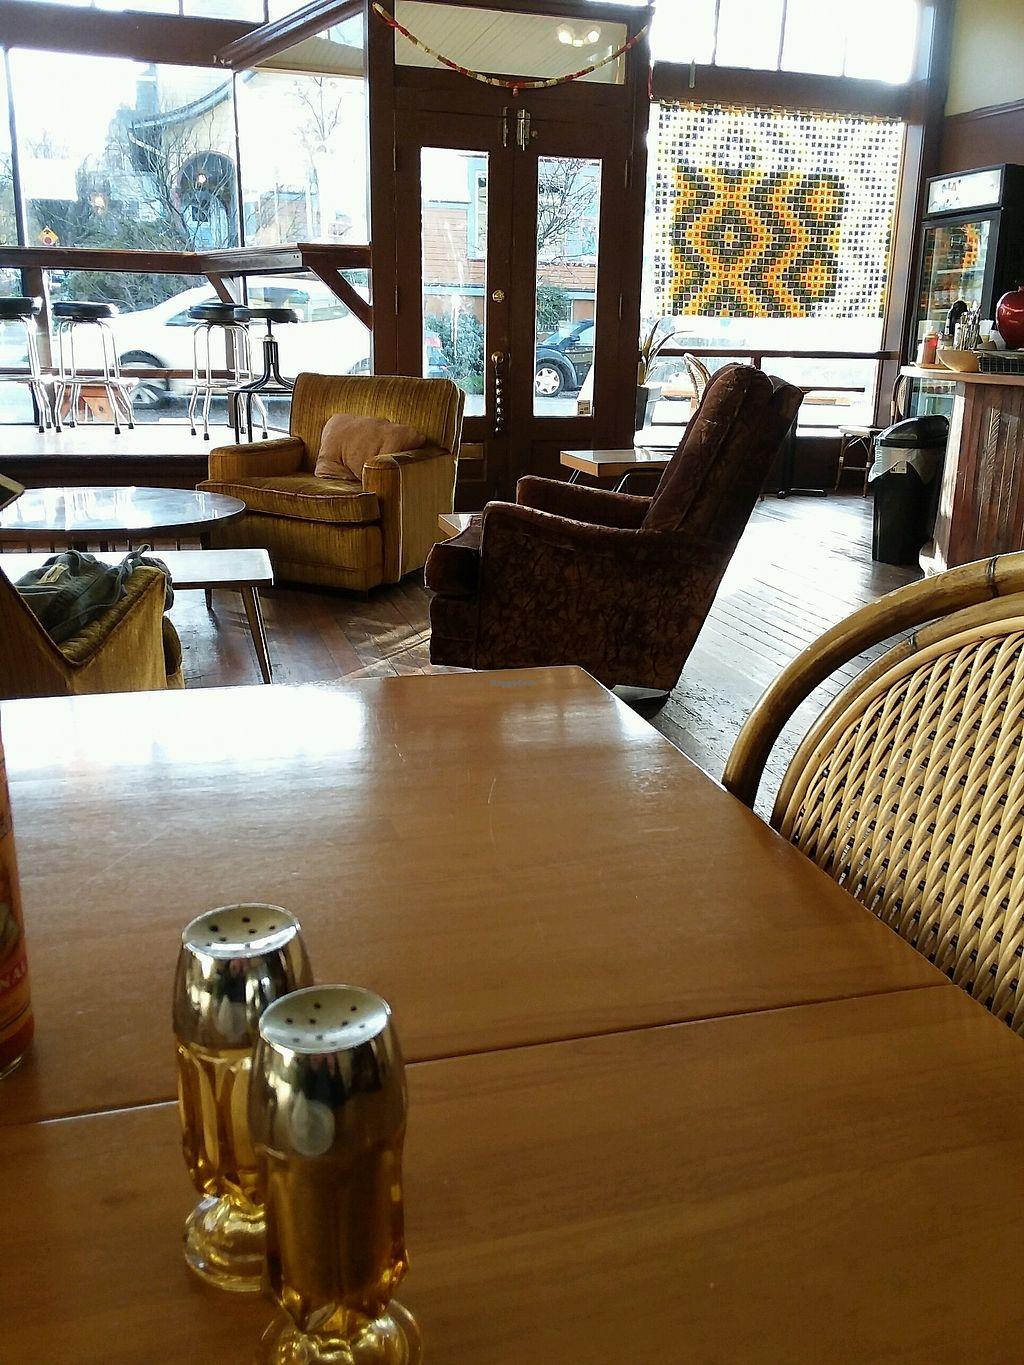 "Photo of Triumph Coffee  by <a href=""/members/profile/Olgalbee"">Olgalbee</a> <br/>seating area <br/> January 30, 2018  - <a href='/contact/abuse/image/73275/352826'>Report</a>"